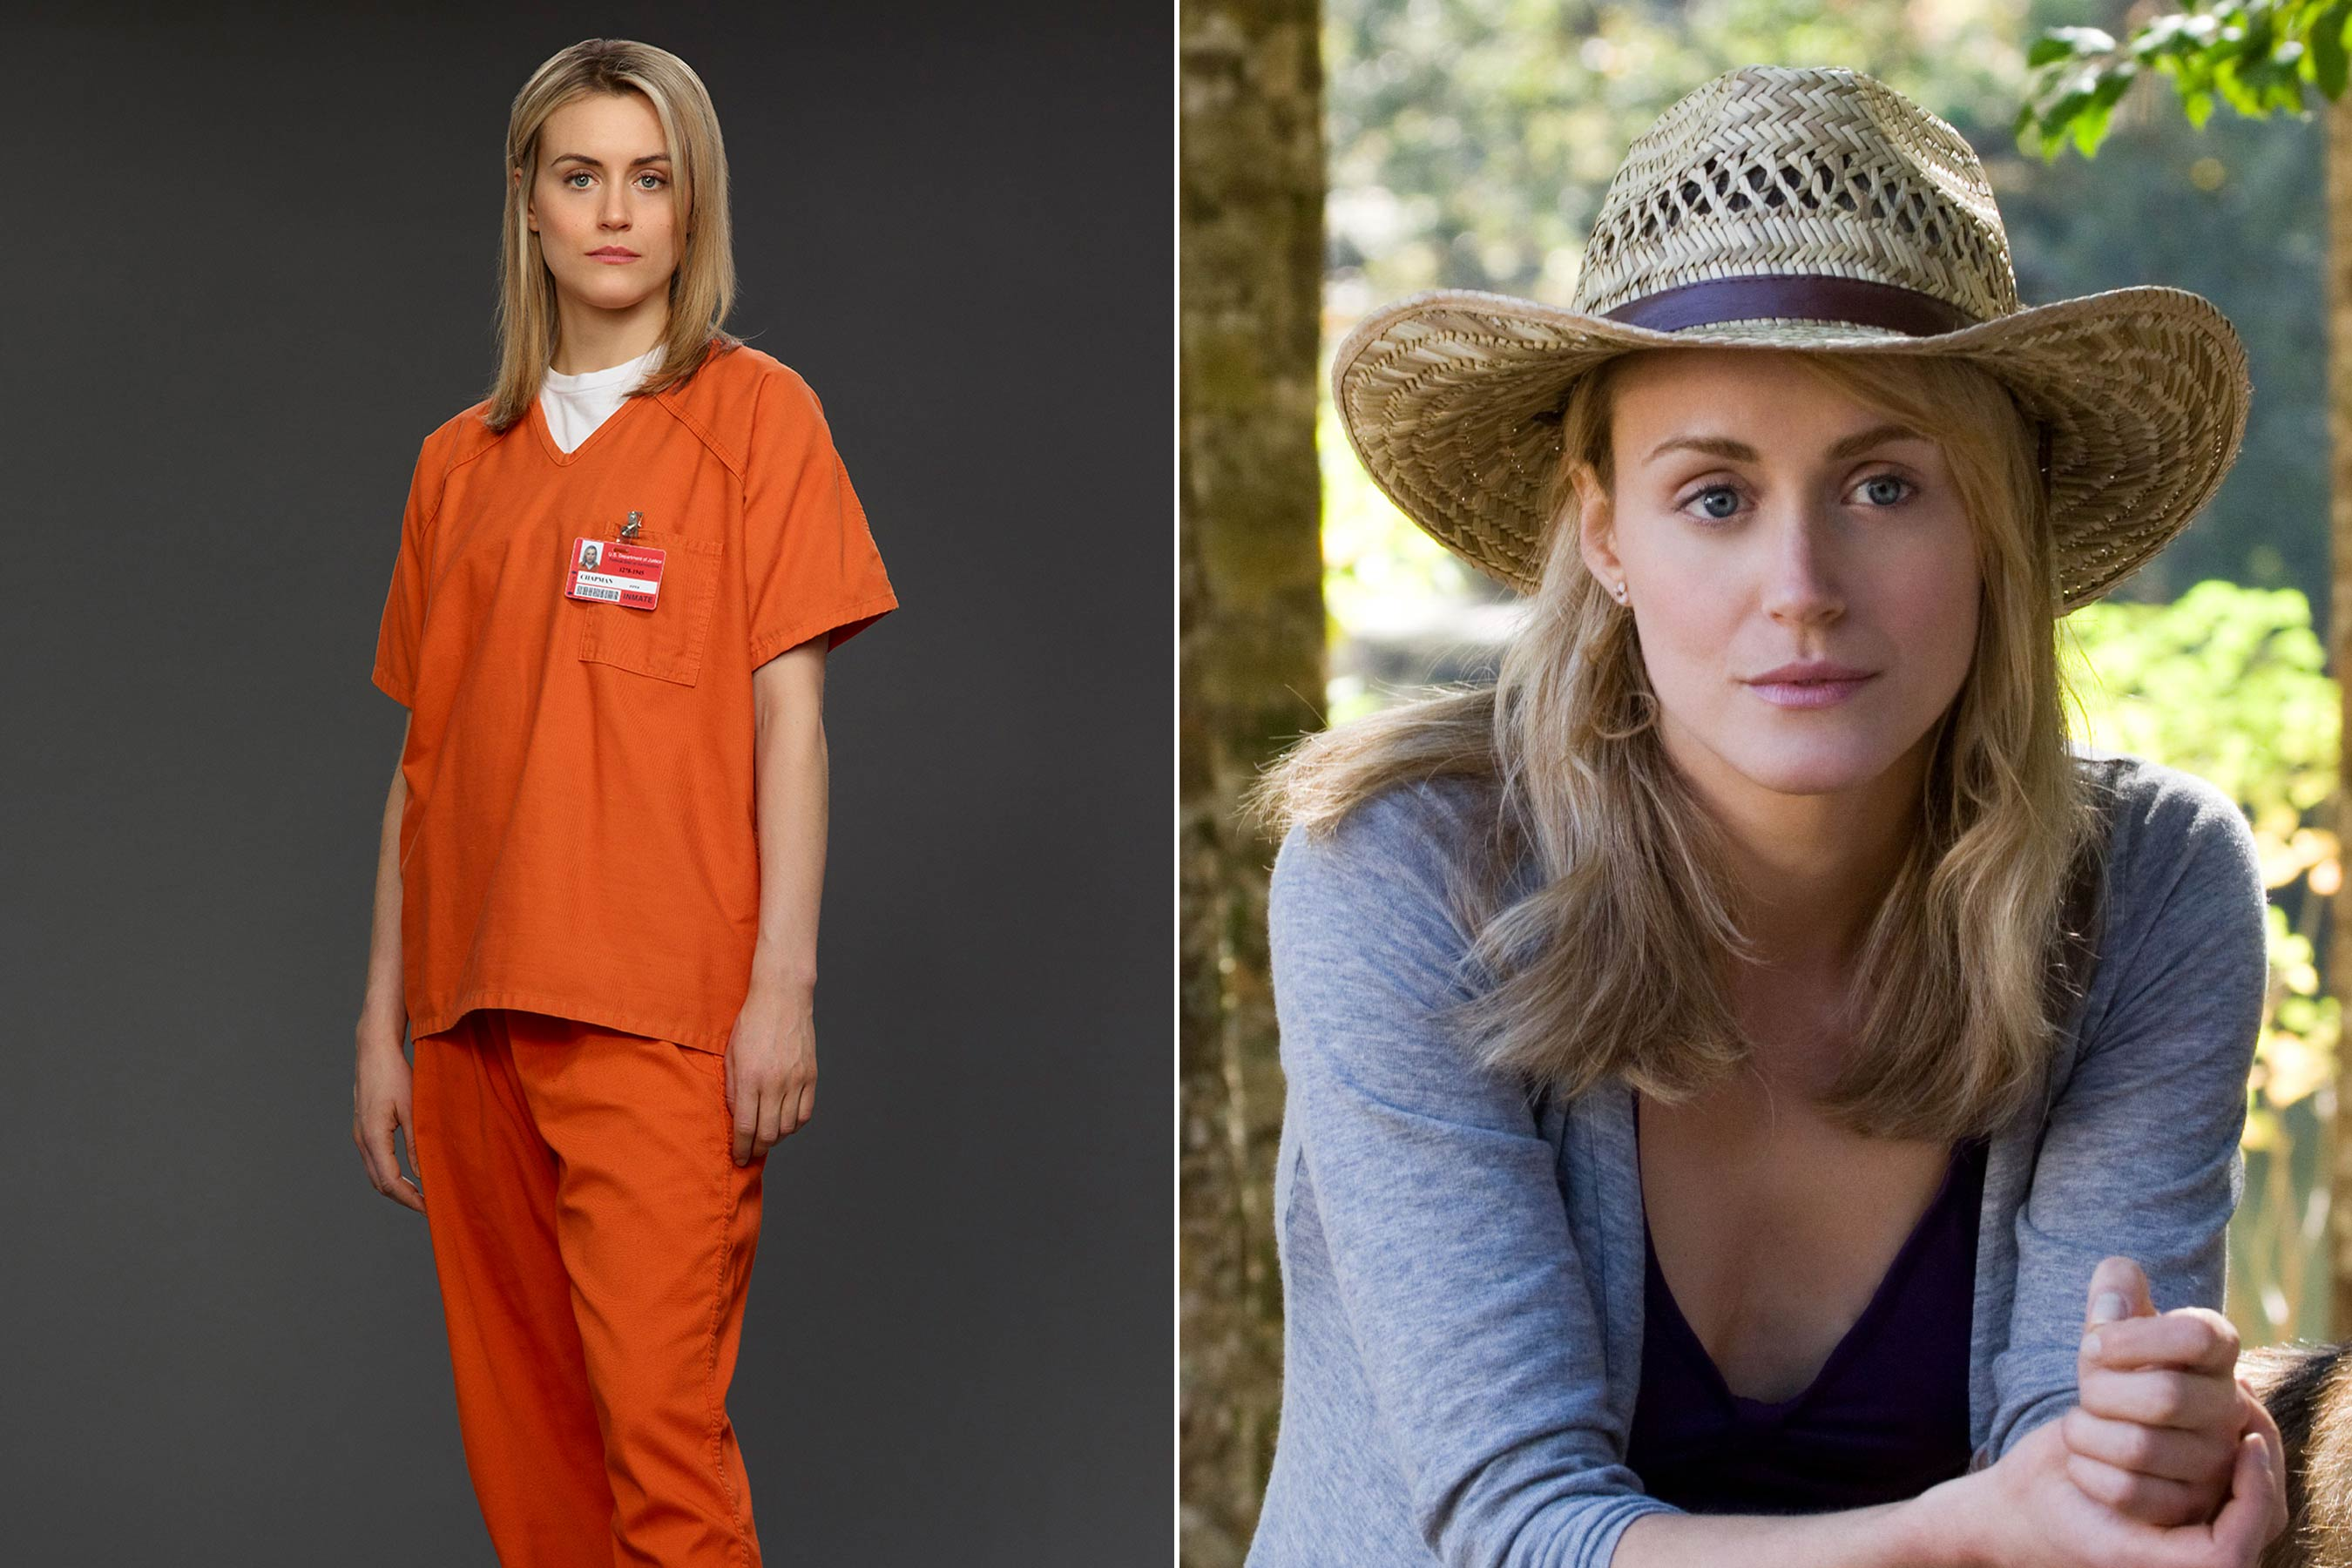 Before Taylor Schilling played Piper Chapman on Orange Is the New Black she starred as Beth Green in The Lucky One.